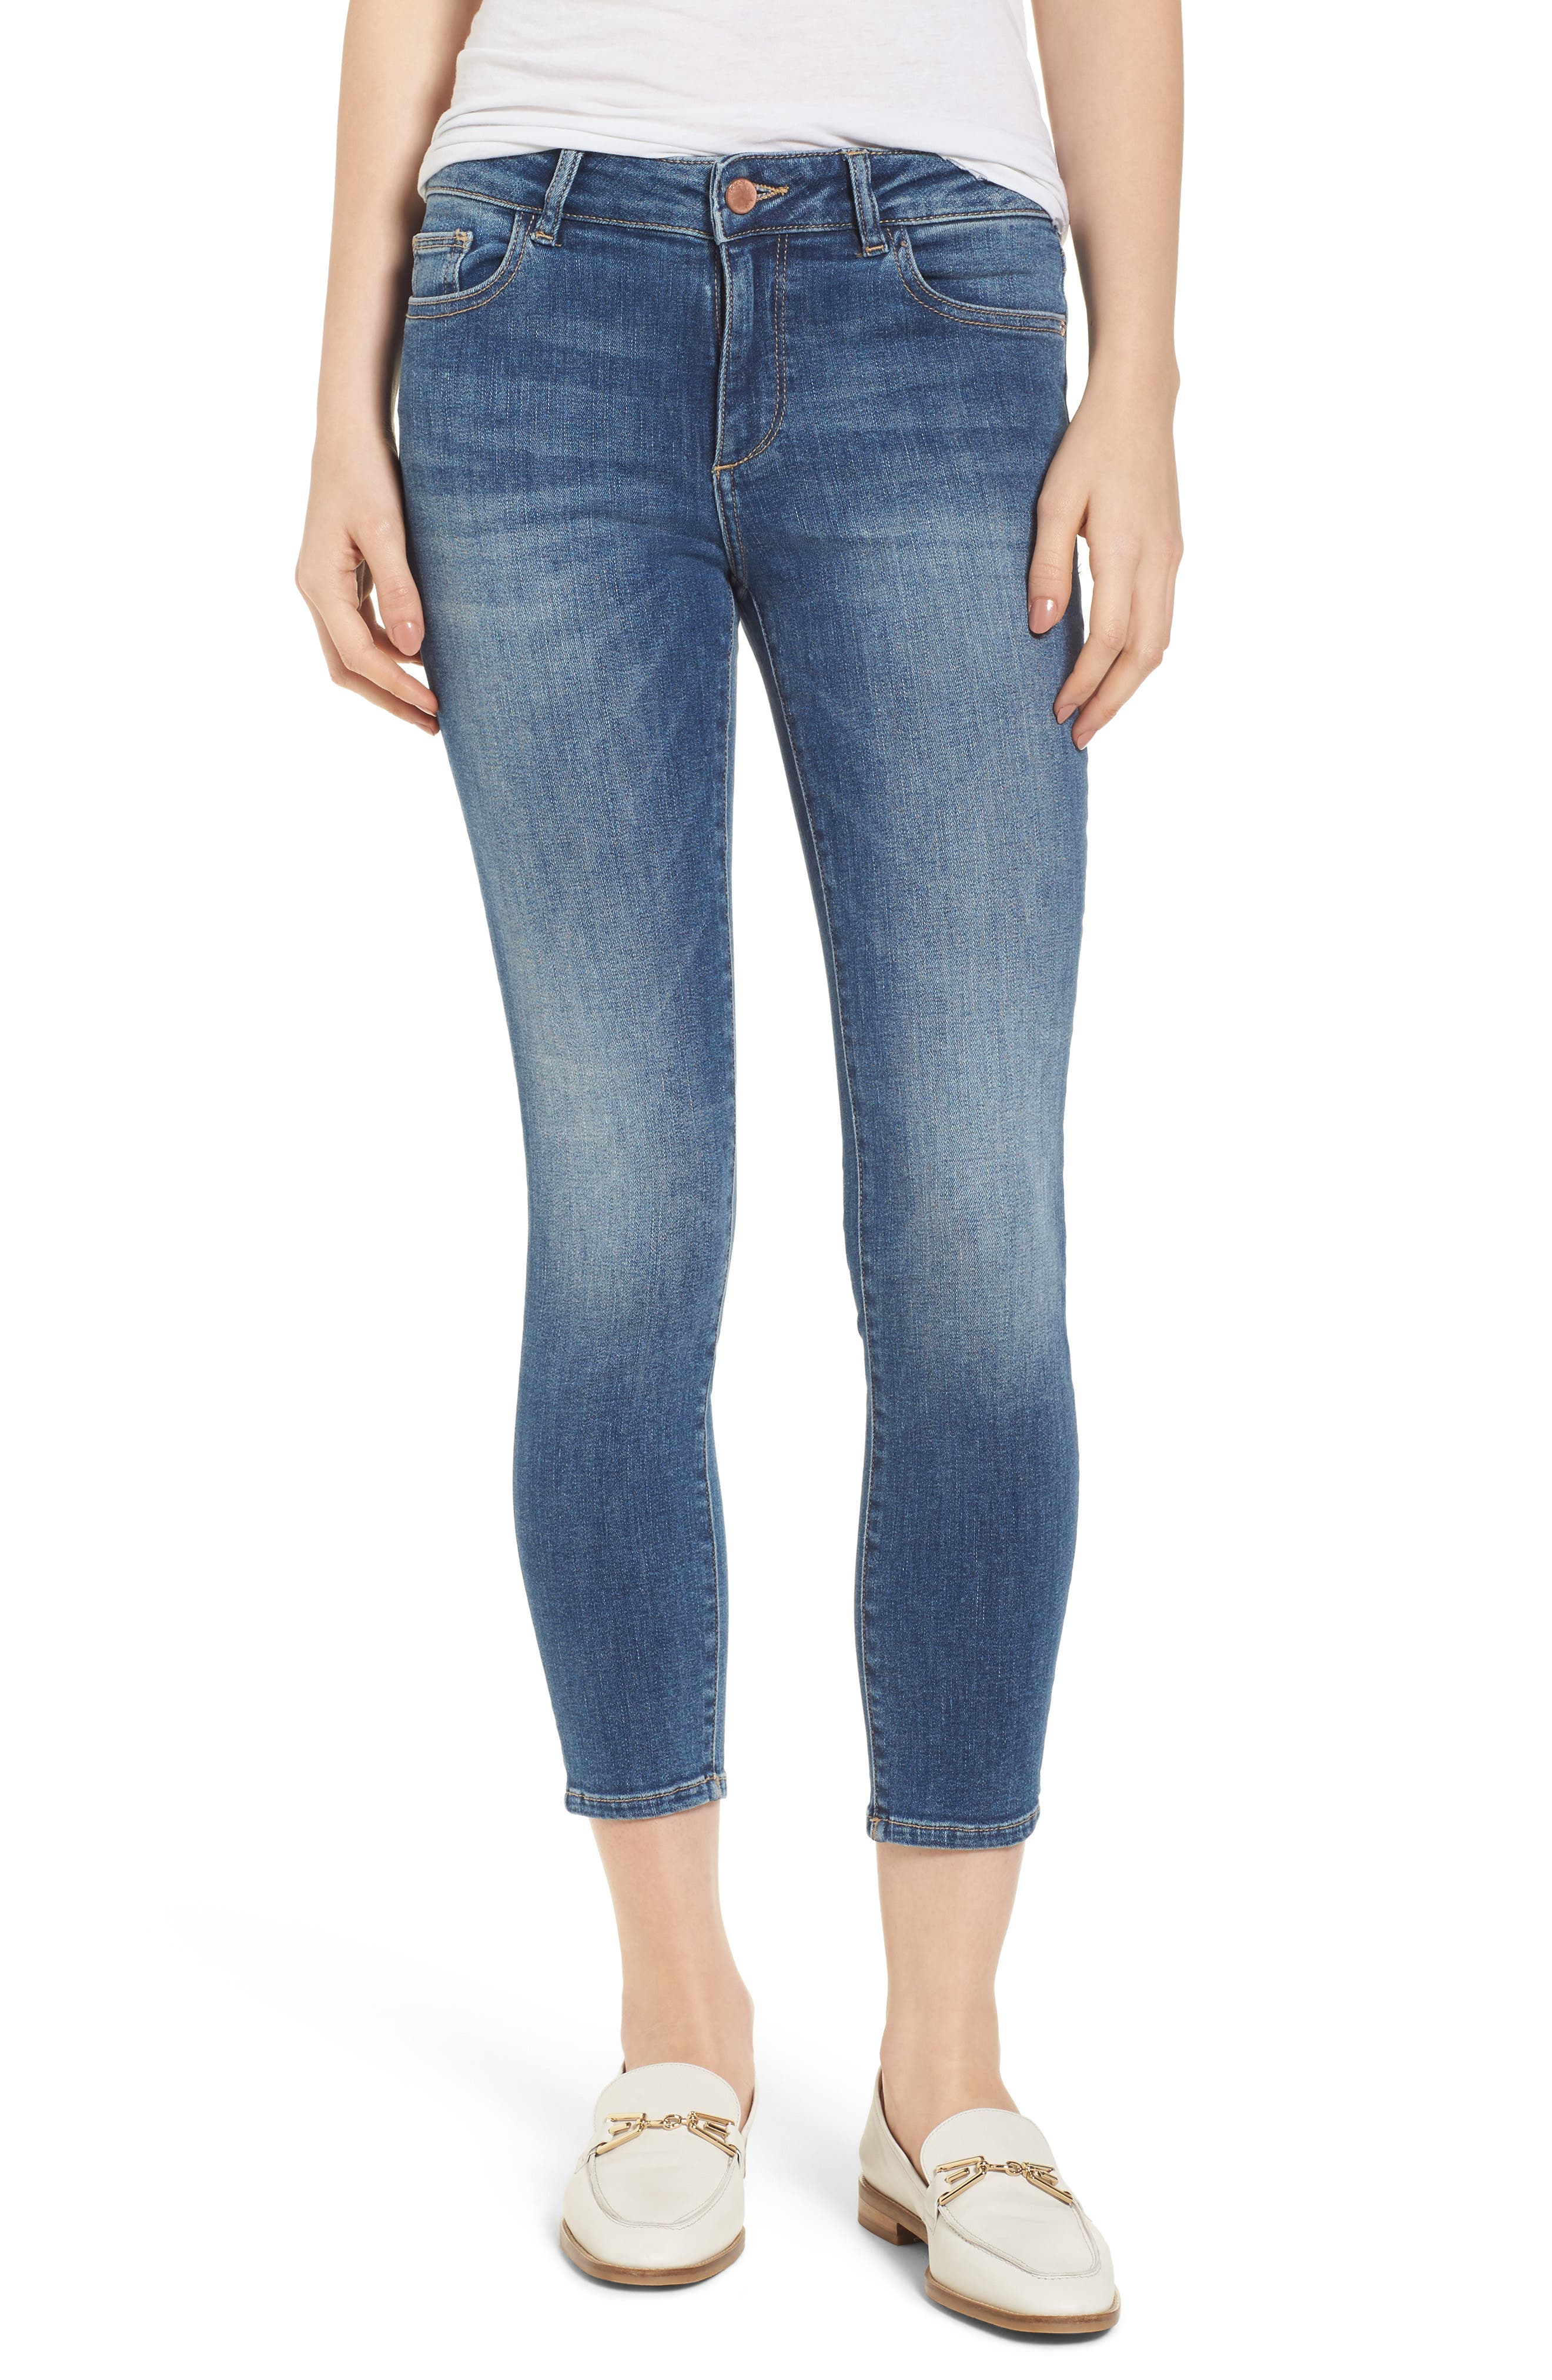 Florence Instasculpt Crop Skinny Jeans,                         Main,                         color, Everglade